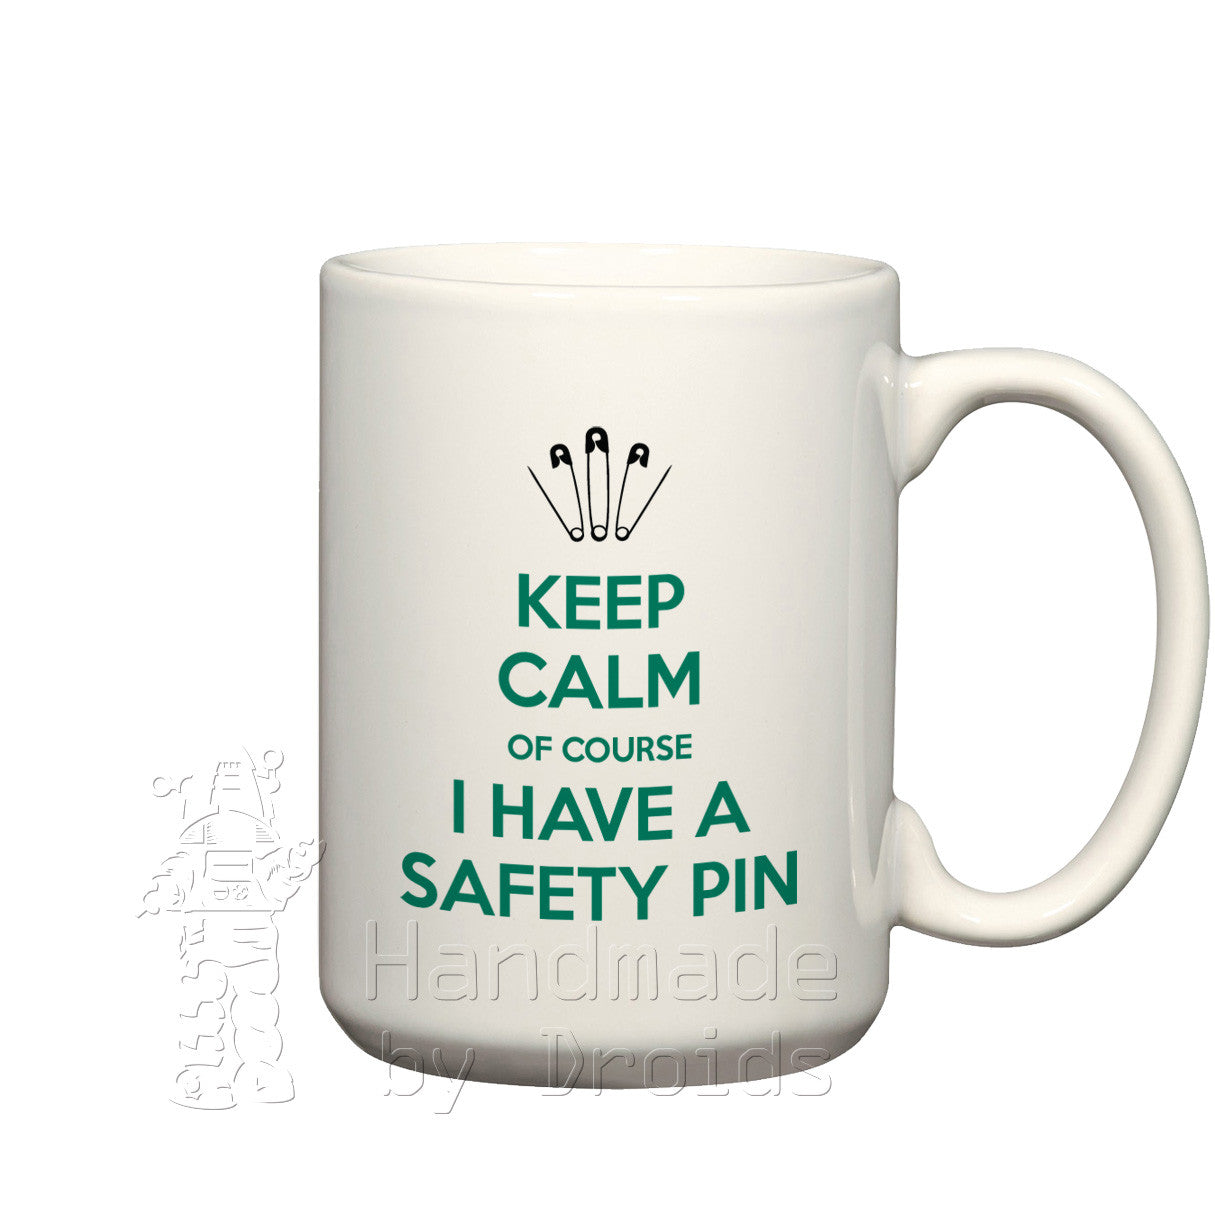 """Keep calm of course I have a safety pin"" mug"